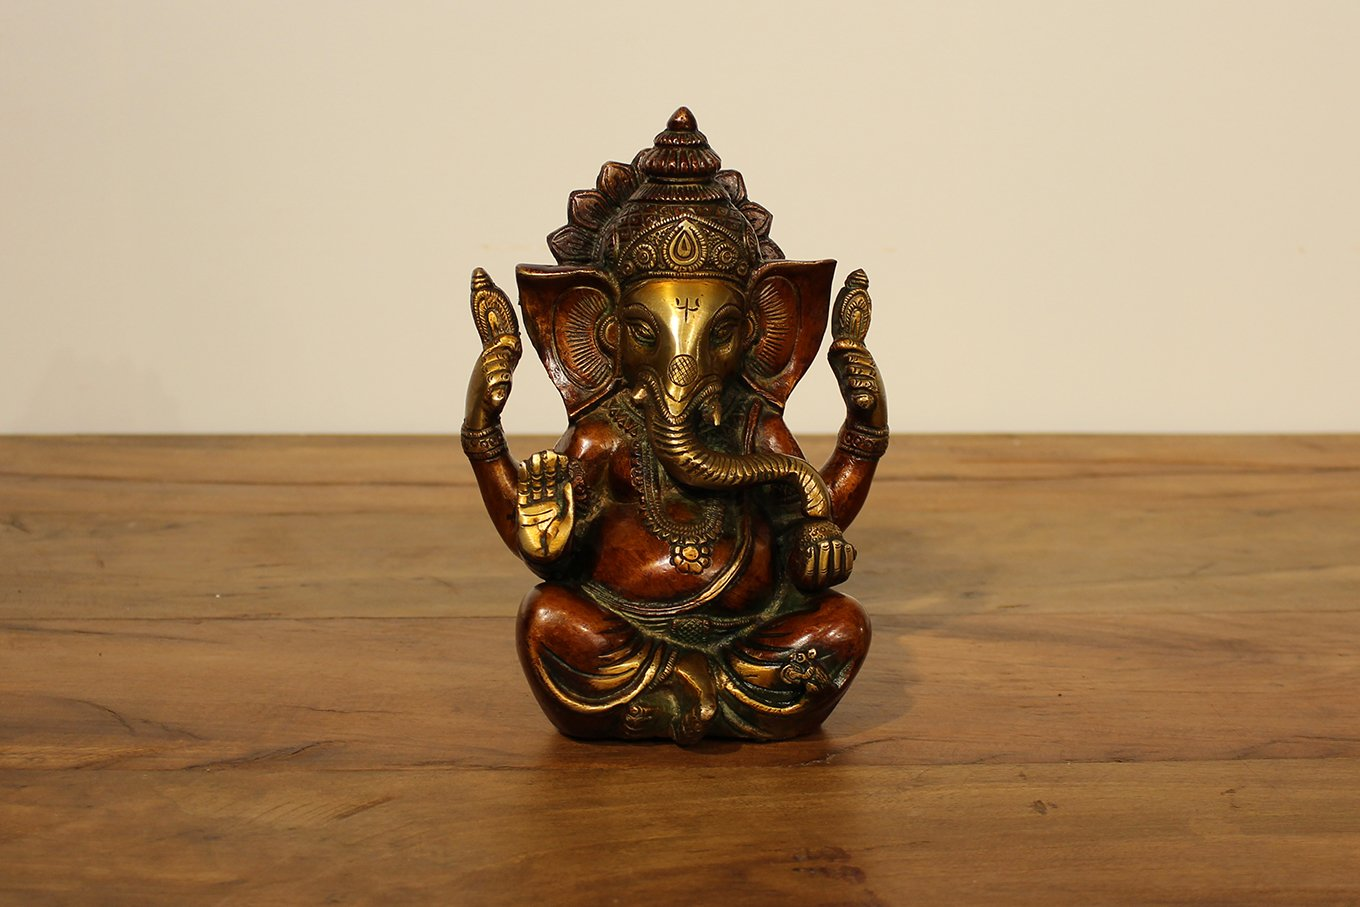 Brass statue of Ganesh in seated position